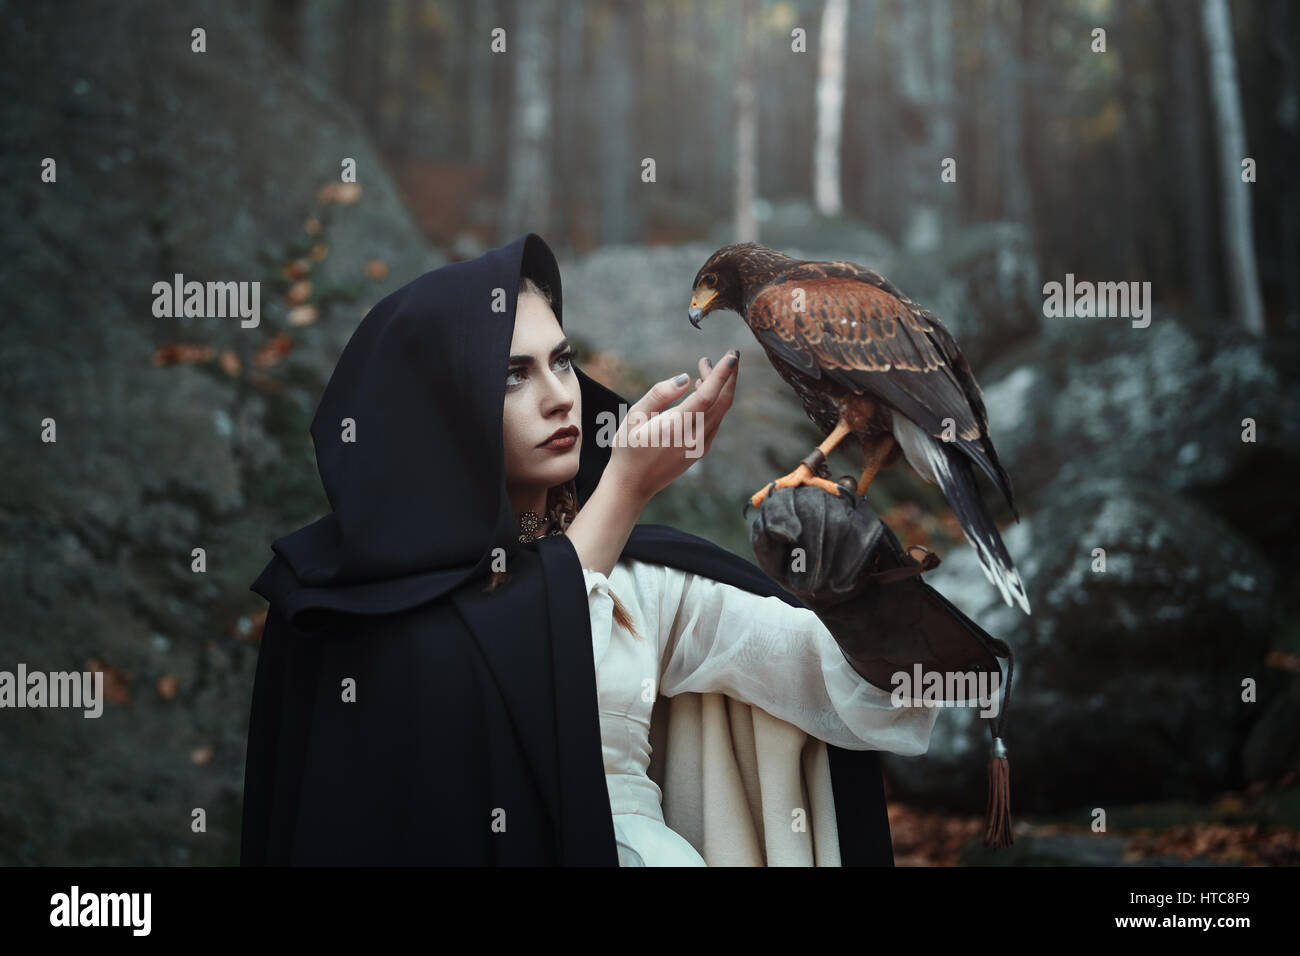 Black hooded huntress with hawk. Fantasy and falconry - Stock Image